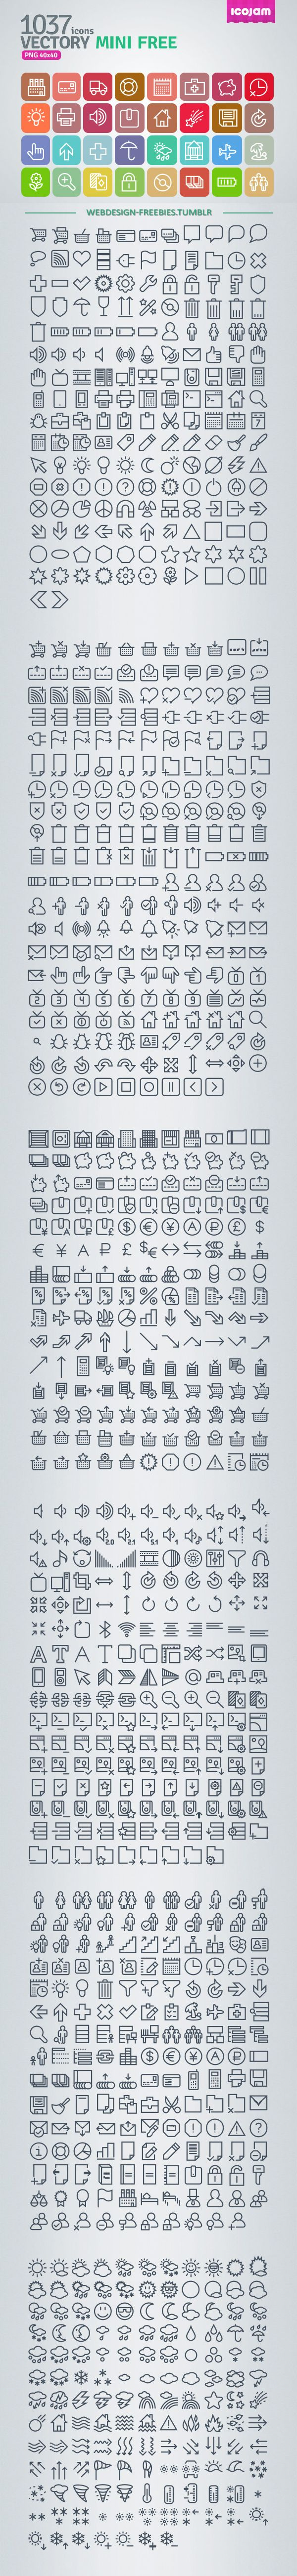 Vectory Mini - 1037 Free Icons